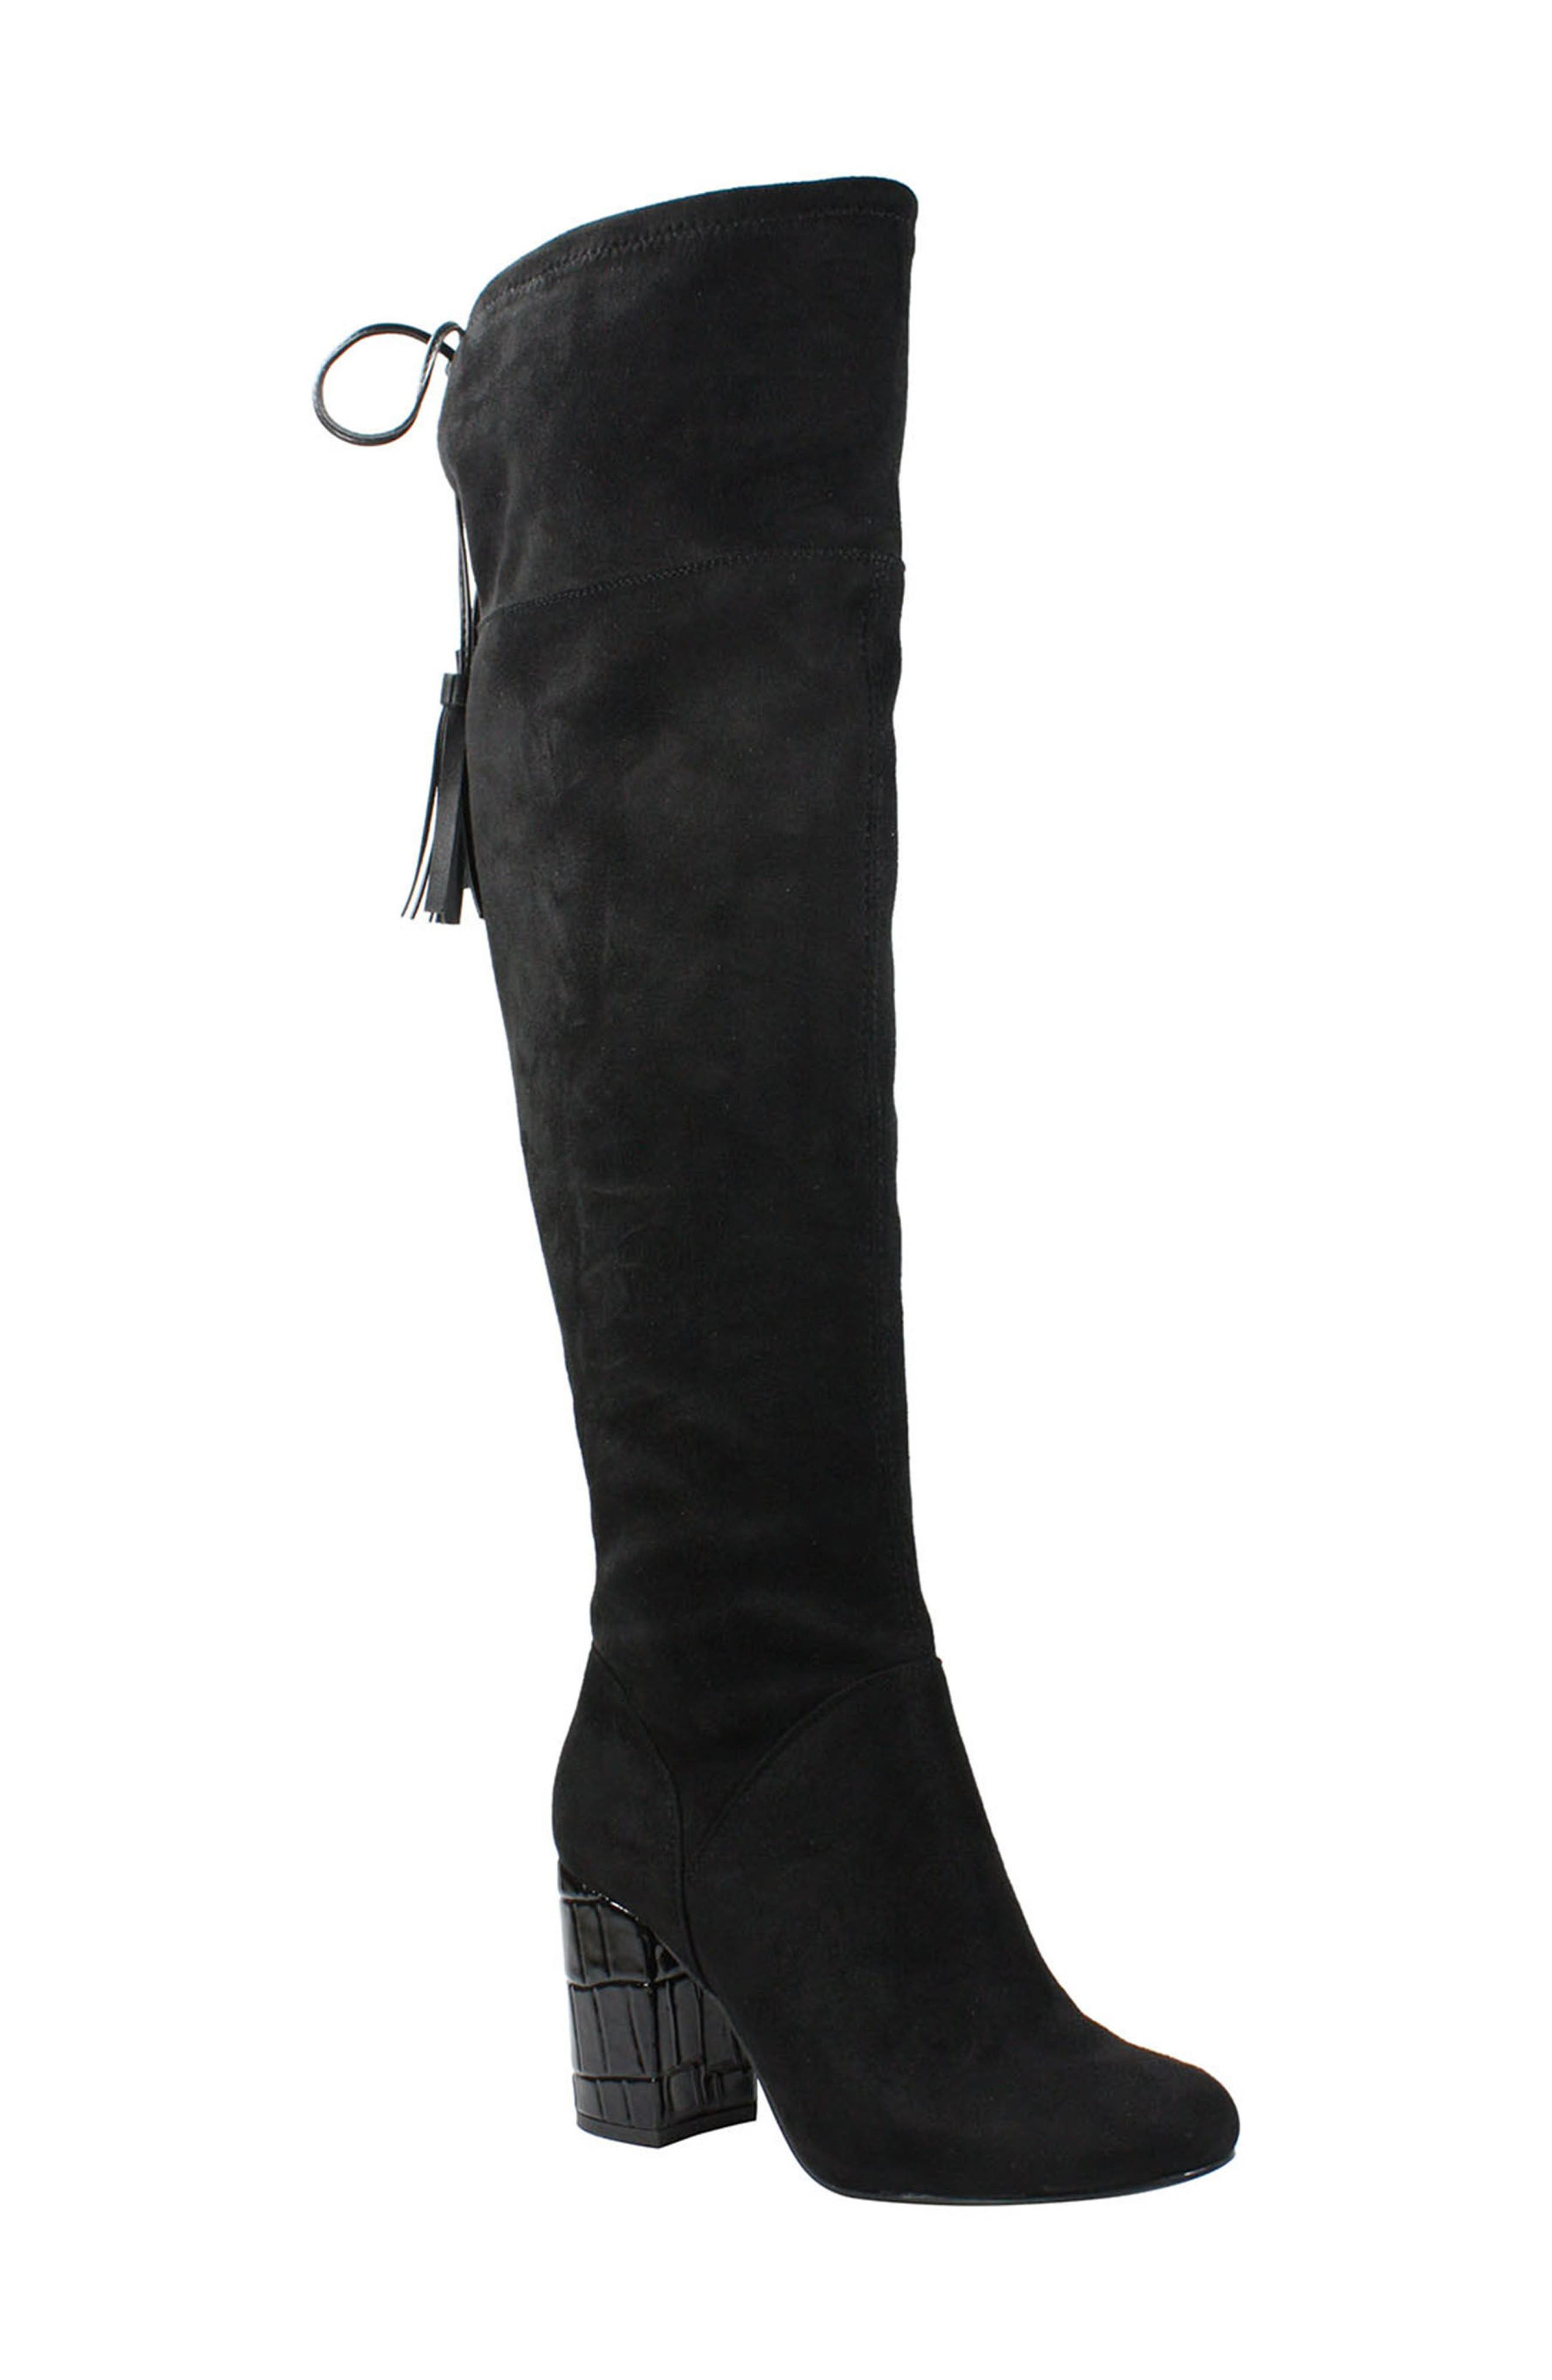 J. Reneé Calcari Over the Knee Boot (Women)